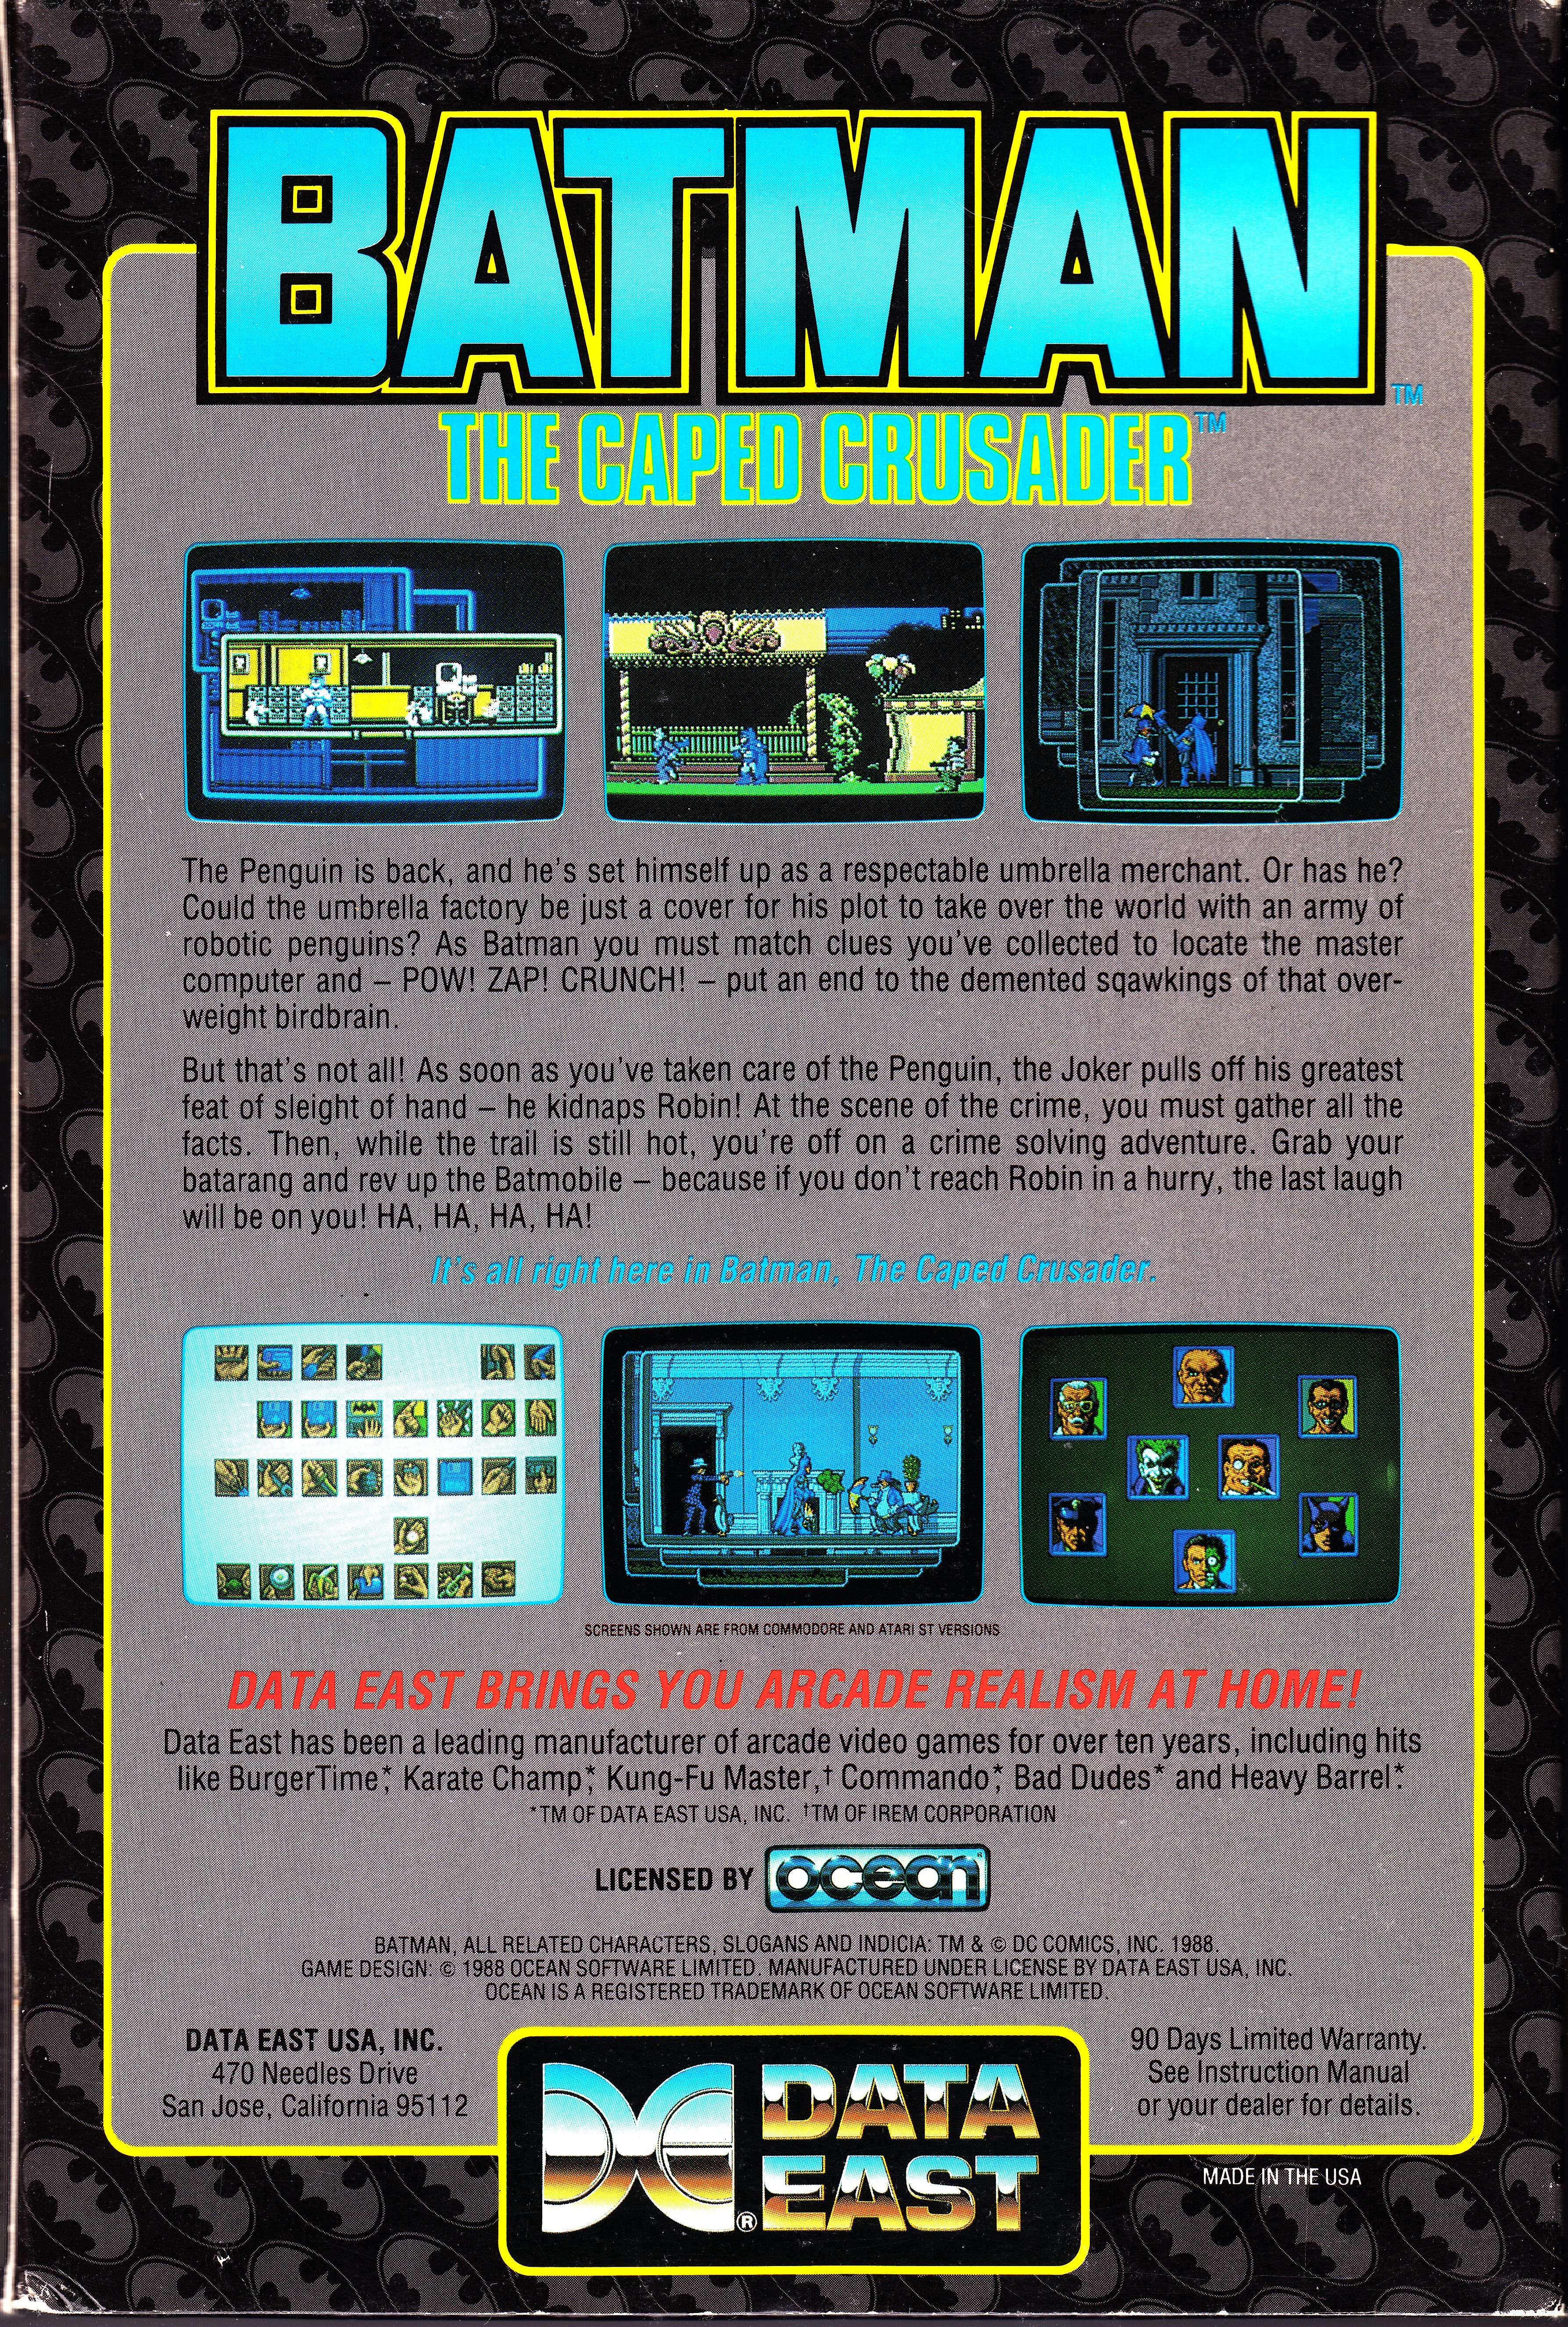 Index of /Video Games/Collection/Commodore 64/Scans/Full Size